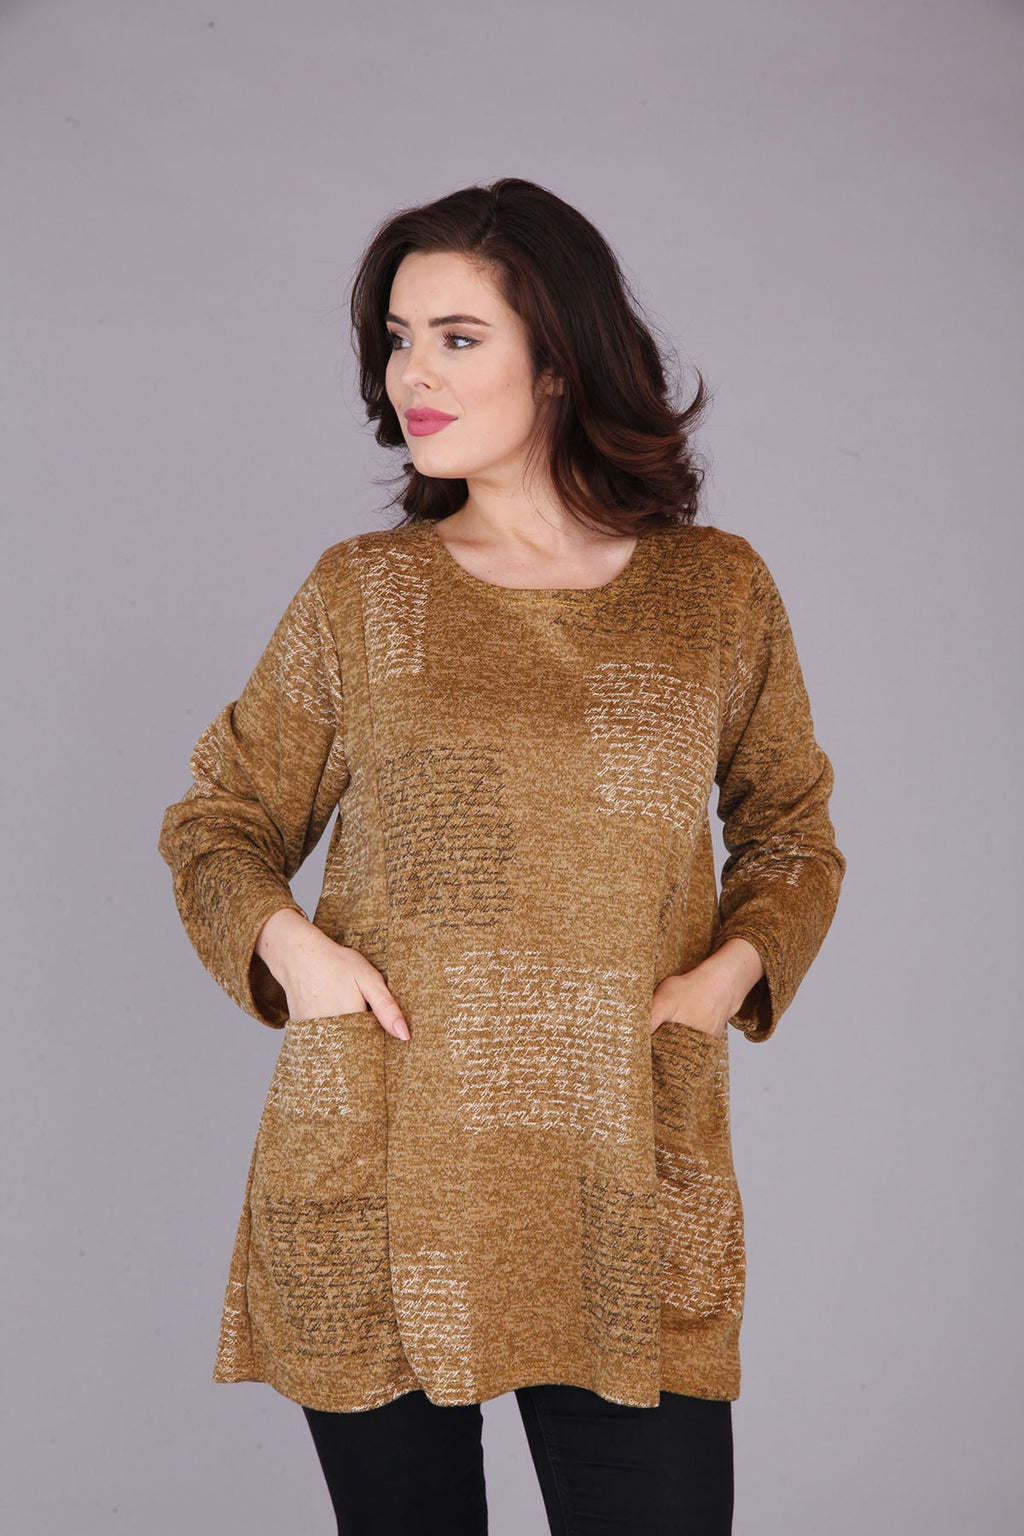 mustard tunic top with pockets